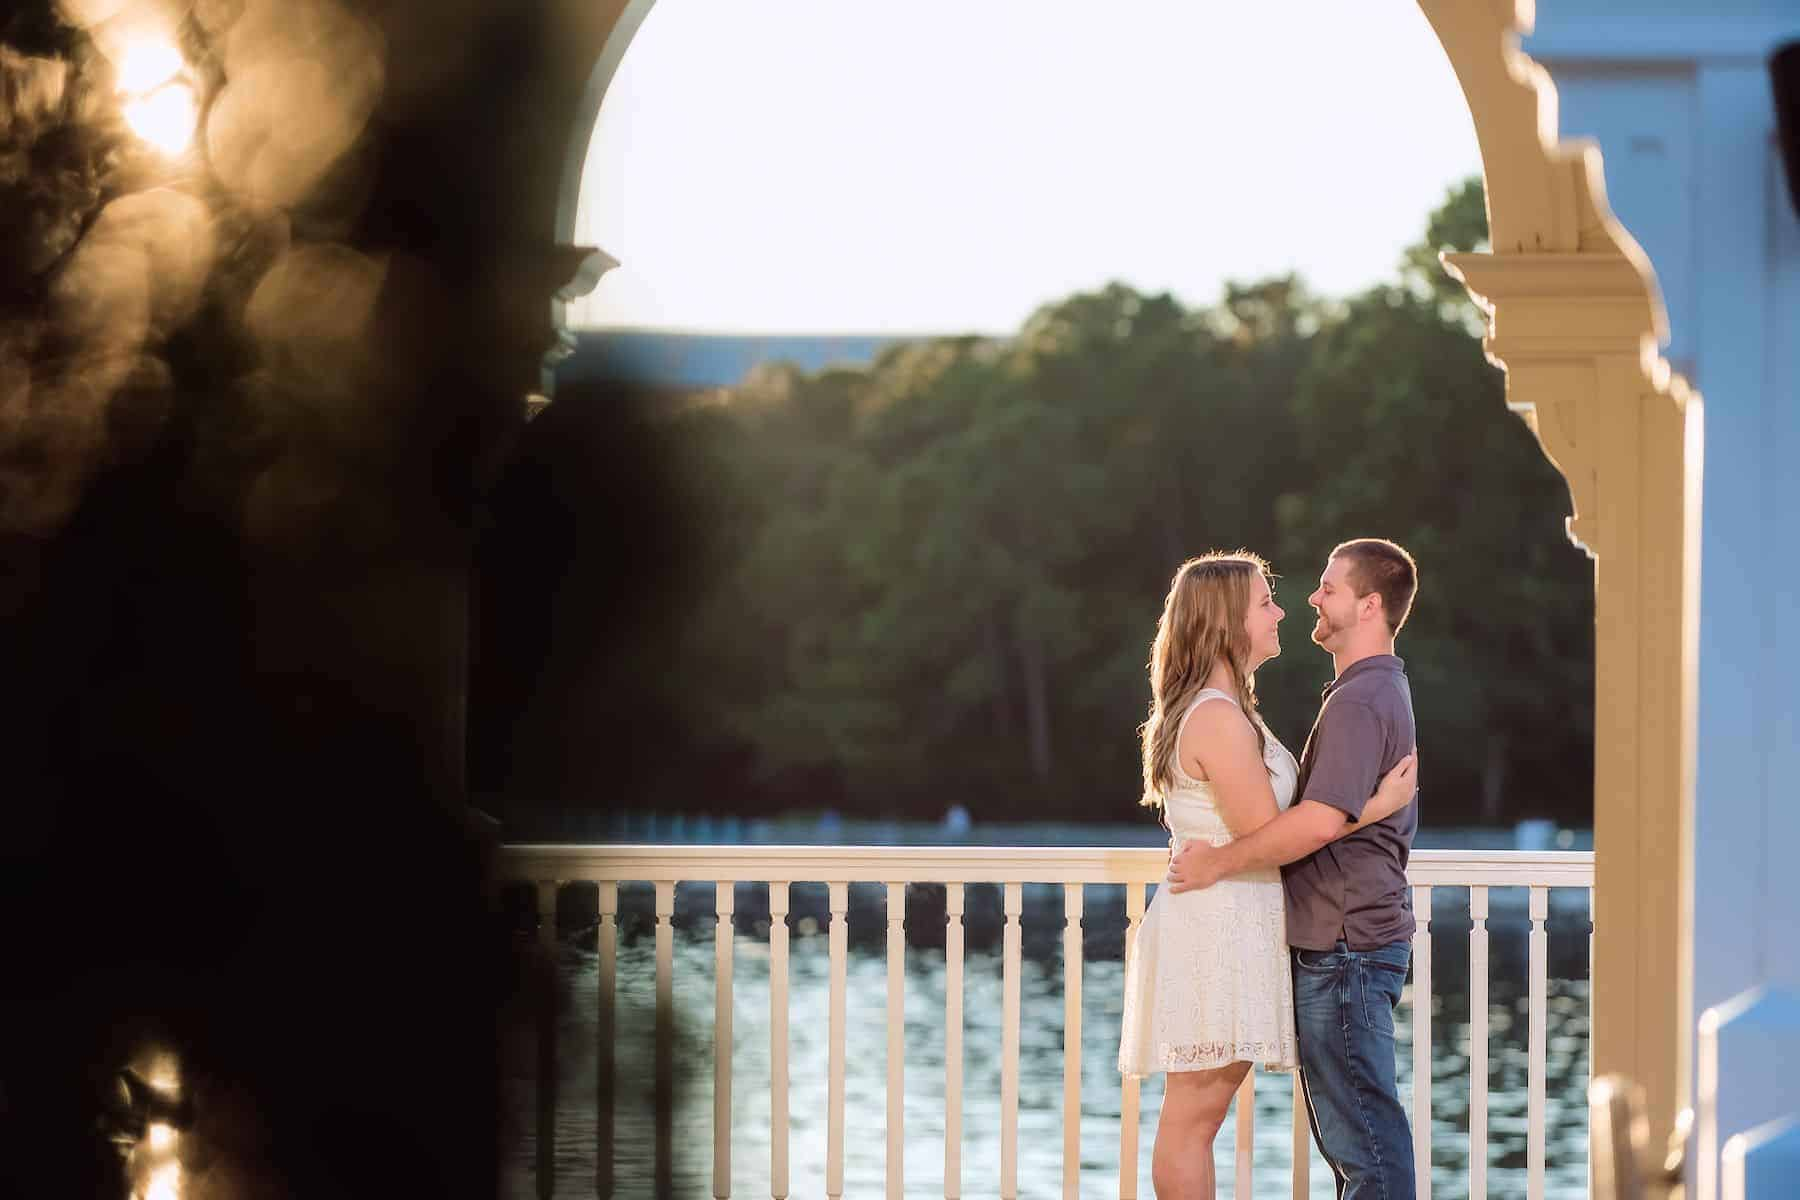 Disney Boardwalk Engagement Experience | Kaitlyn and Patrick